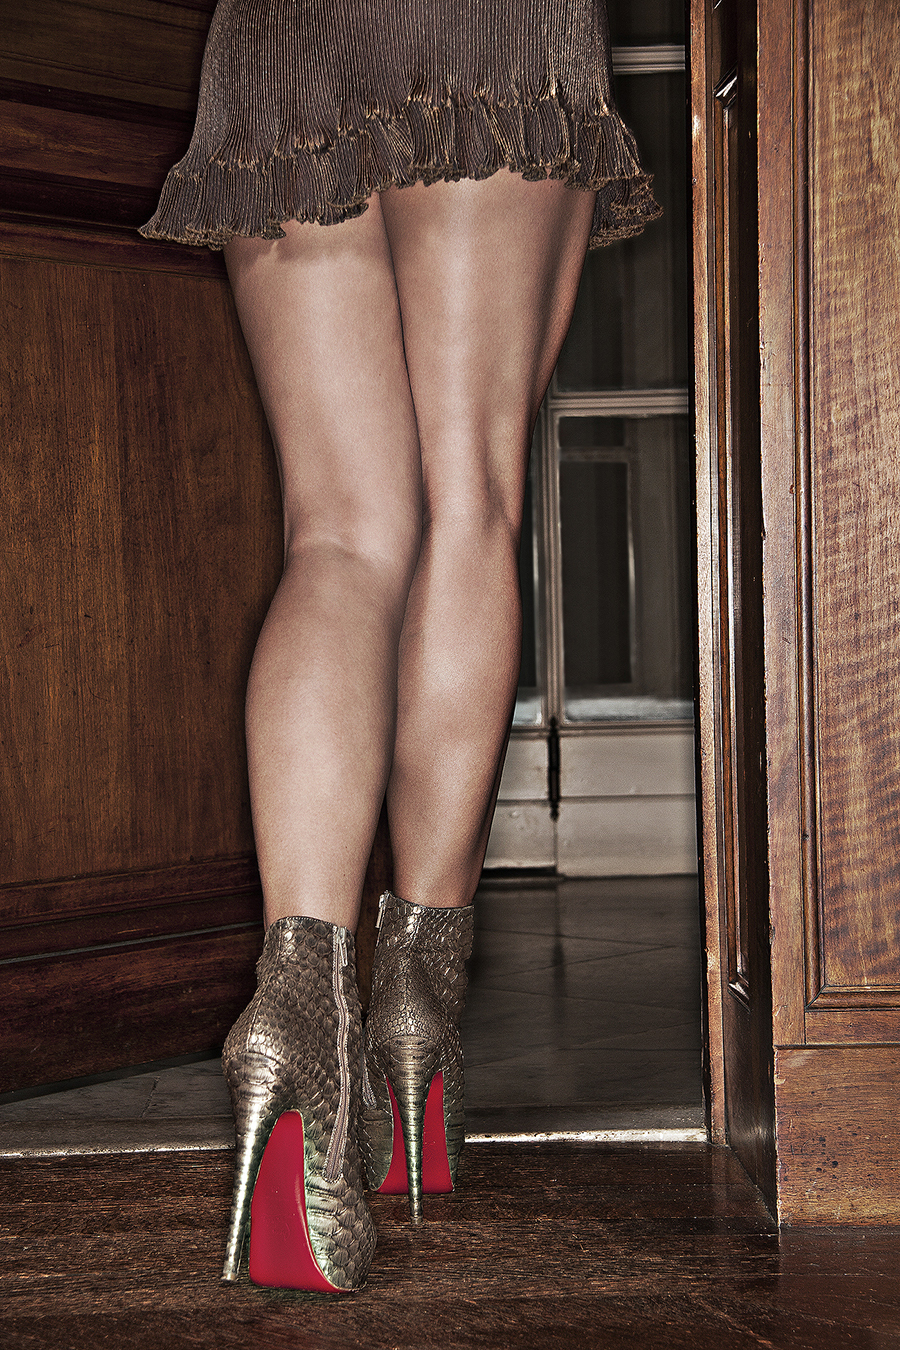 Tony_Ward_fashion_photography_magazine_legs_German_Cosmopolitan_model_Carmelita_martell_Louboutin_heels